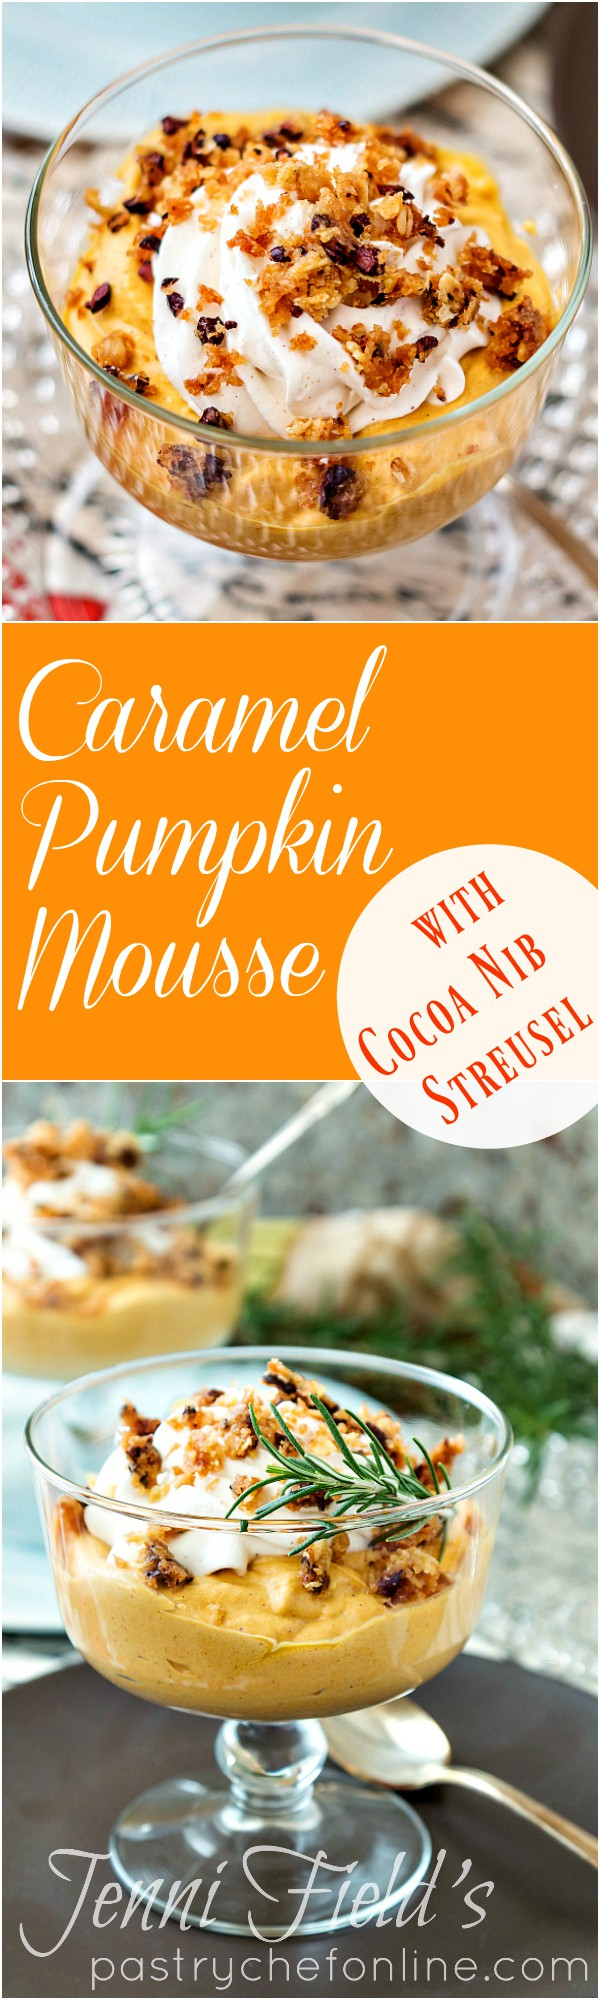 This spectacular caramel pumpkin mousse with cocoa nib streusel is the perfect flavorful yet light dessert recipe for the end of your Thanksgiving meal. Try it. I bet it will become a new favorite! #ProgressiveEats | pastrychefonline.com